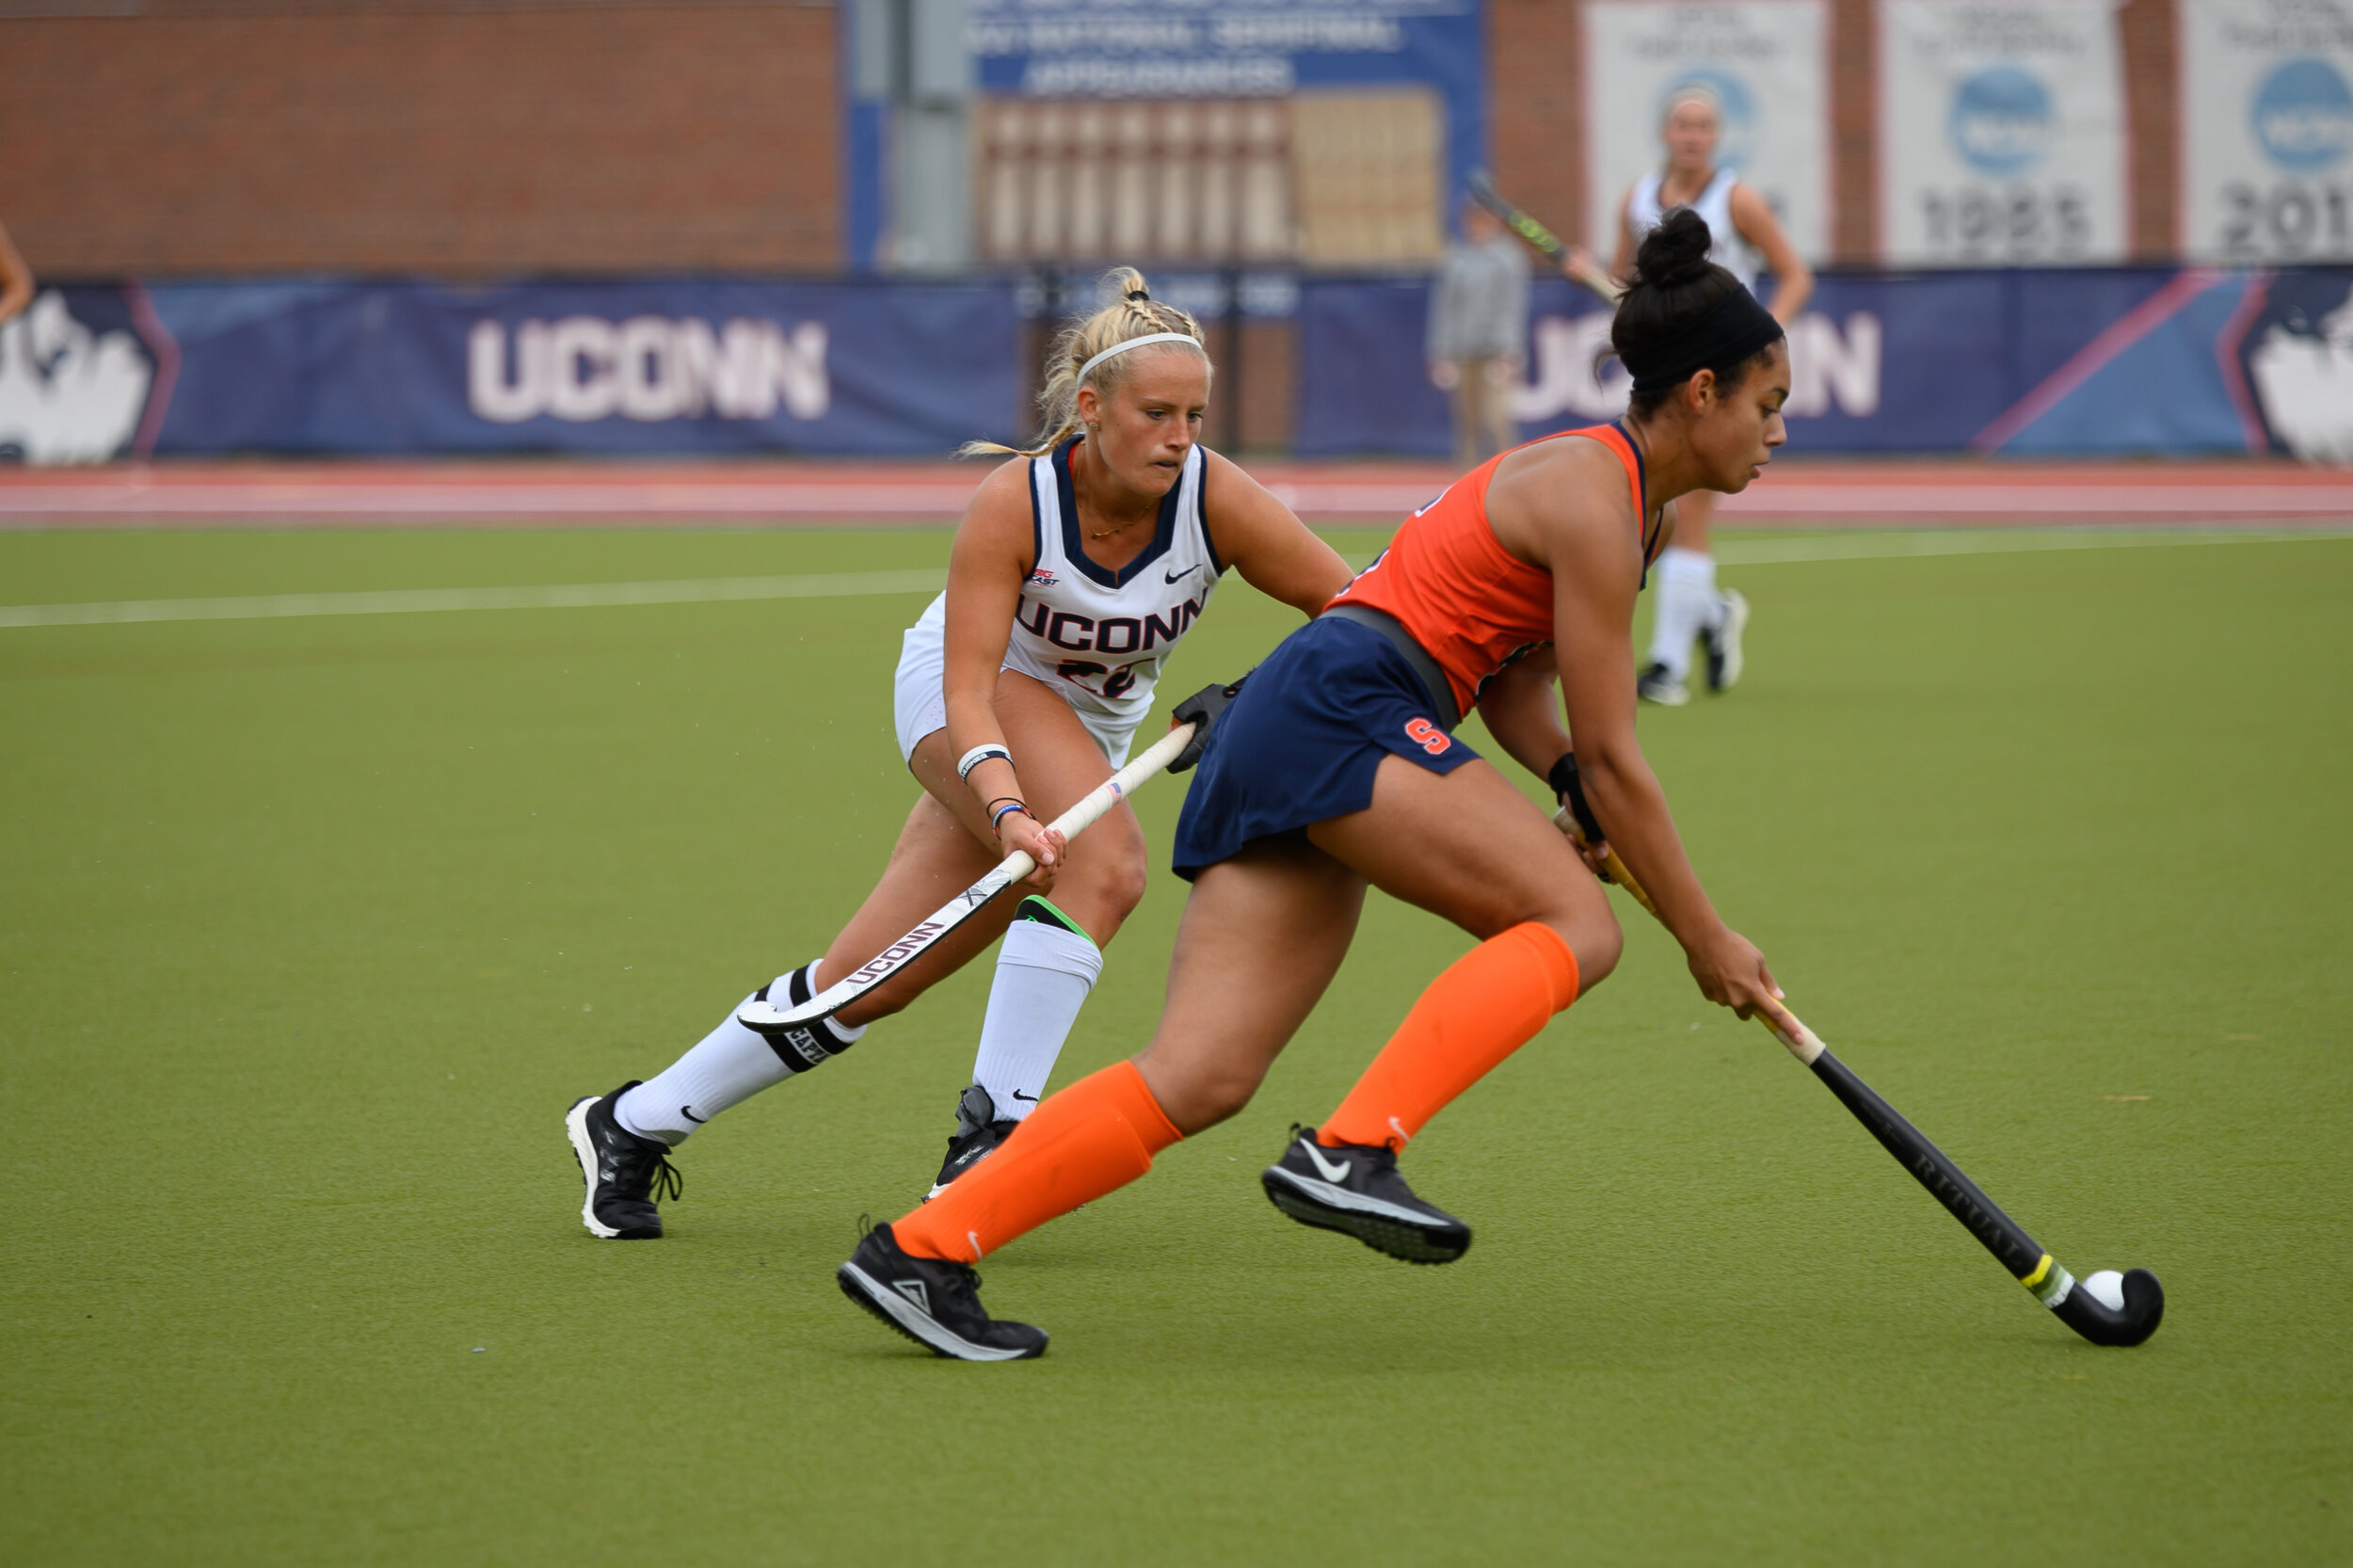 The UConn Field Hockey team took their third loss of the season during an intense game against Syracuse University on Sunday, Oct. 20. After going into two overtime periods with a tying score of 0-0, Syracuse won in a penalty shoot out.  Photo by Maggie Chafouleas/The Daily Campus